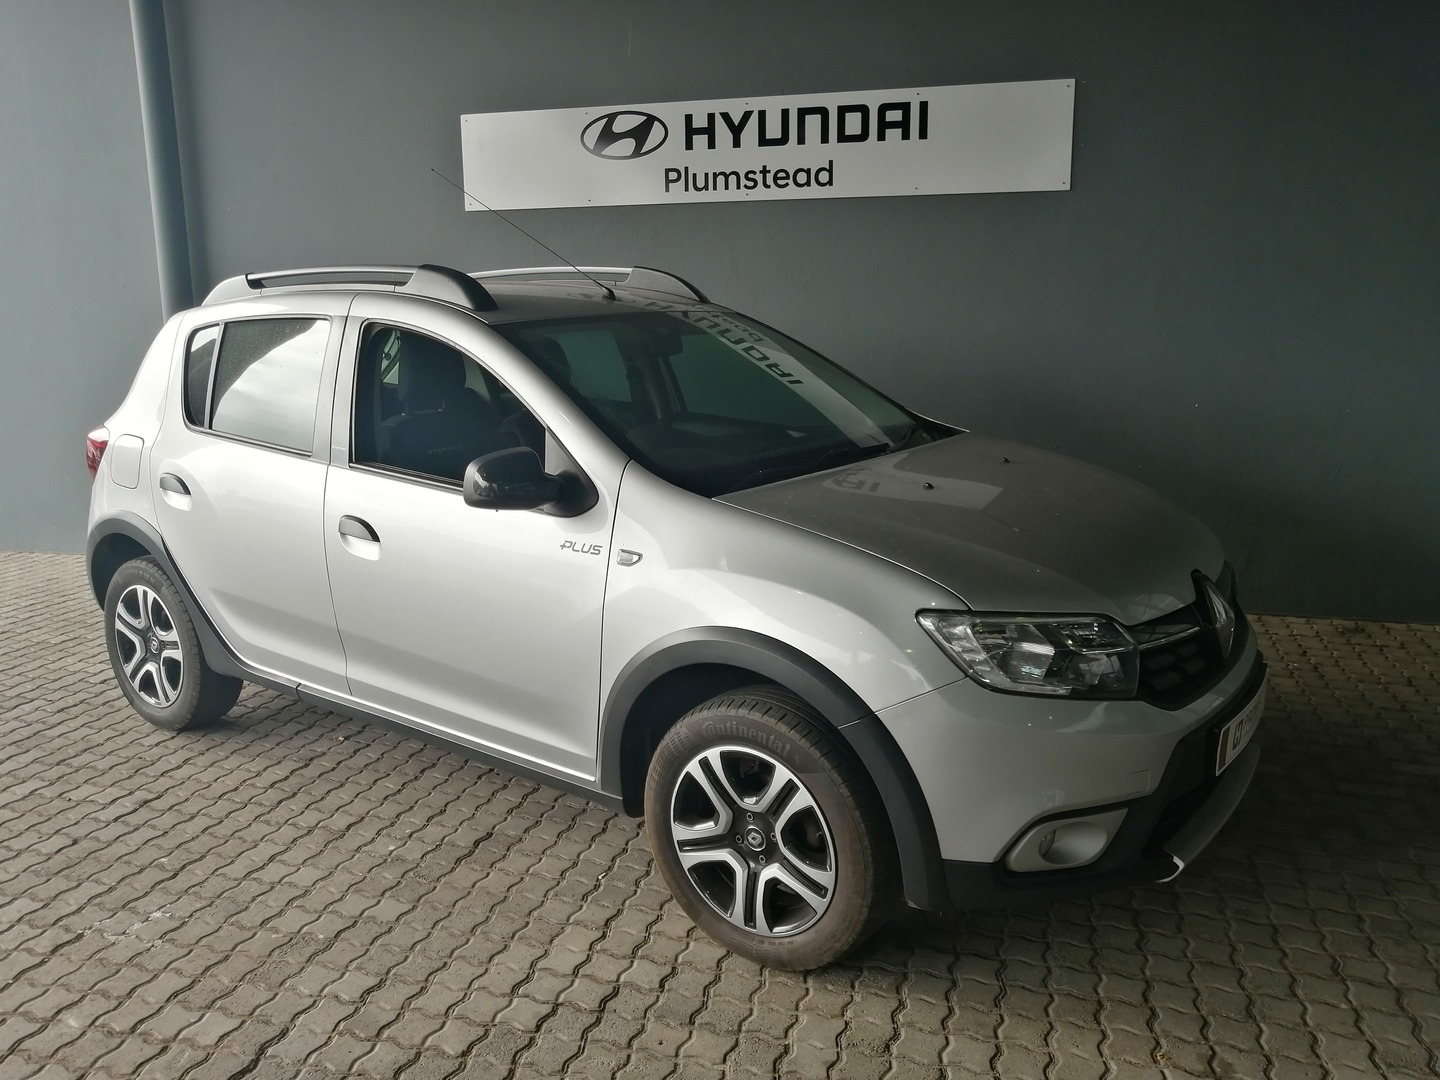 RENAULT 900T STEPWAY PLUS/TECHROAD Cape Town 0321866